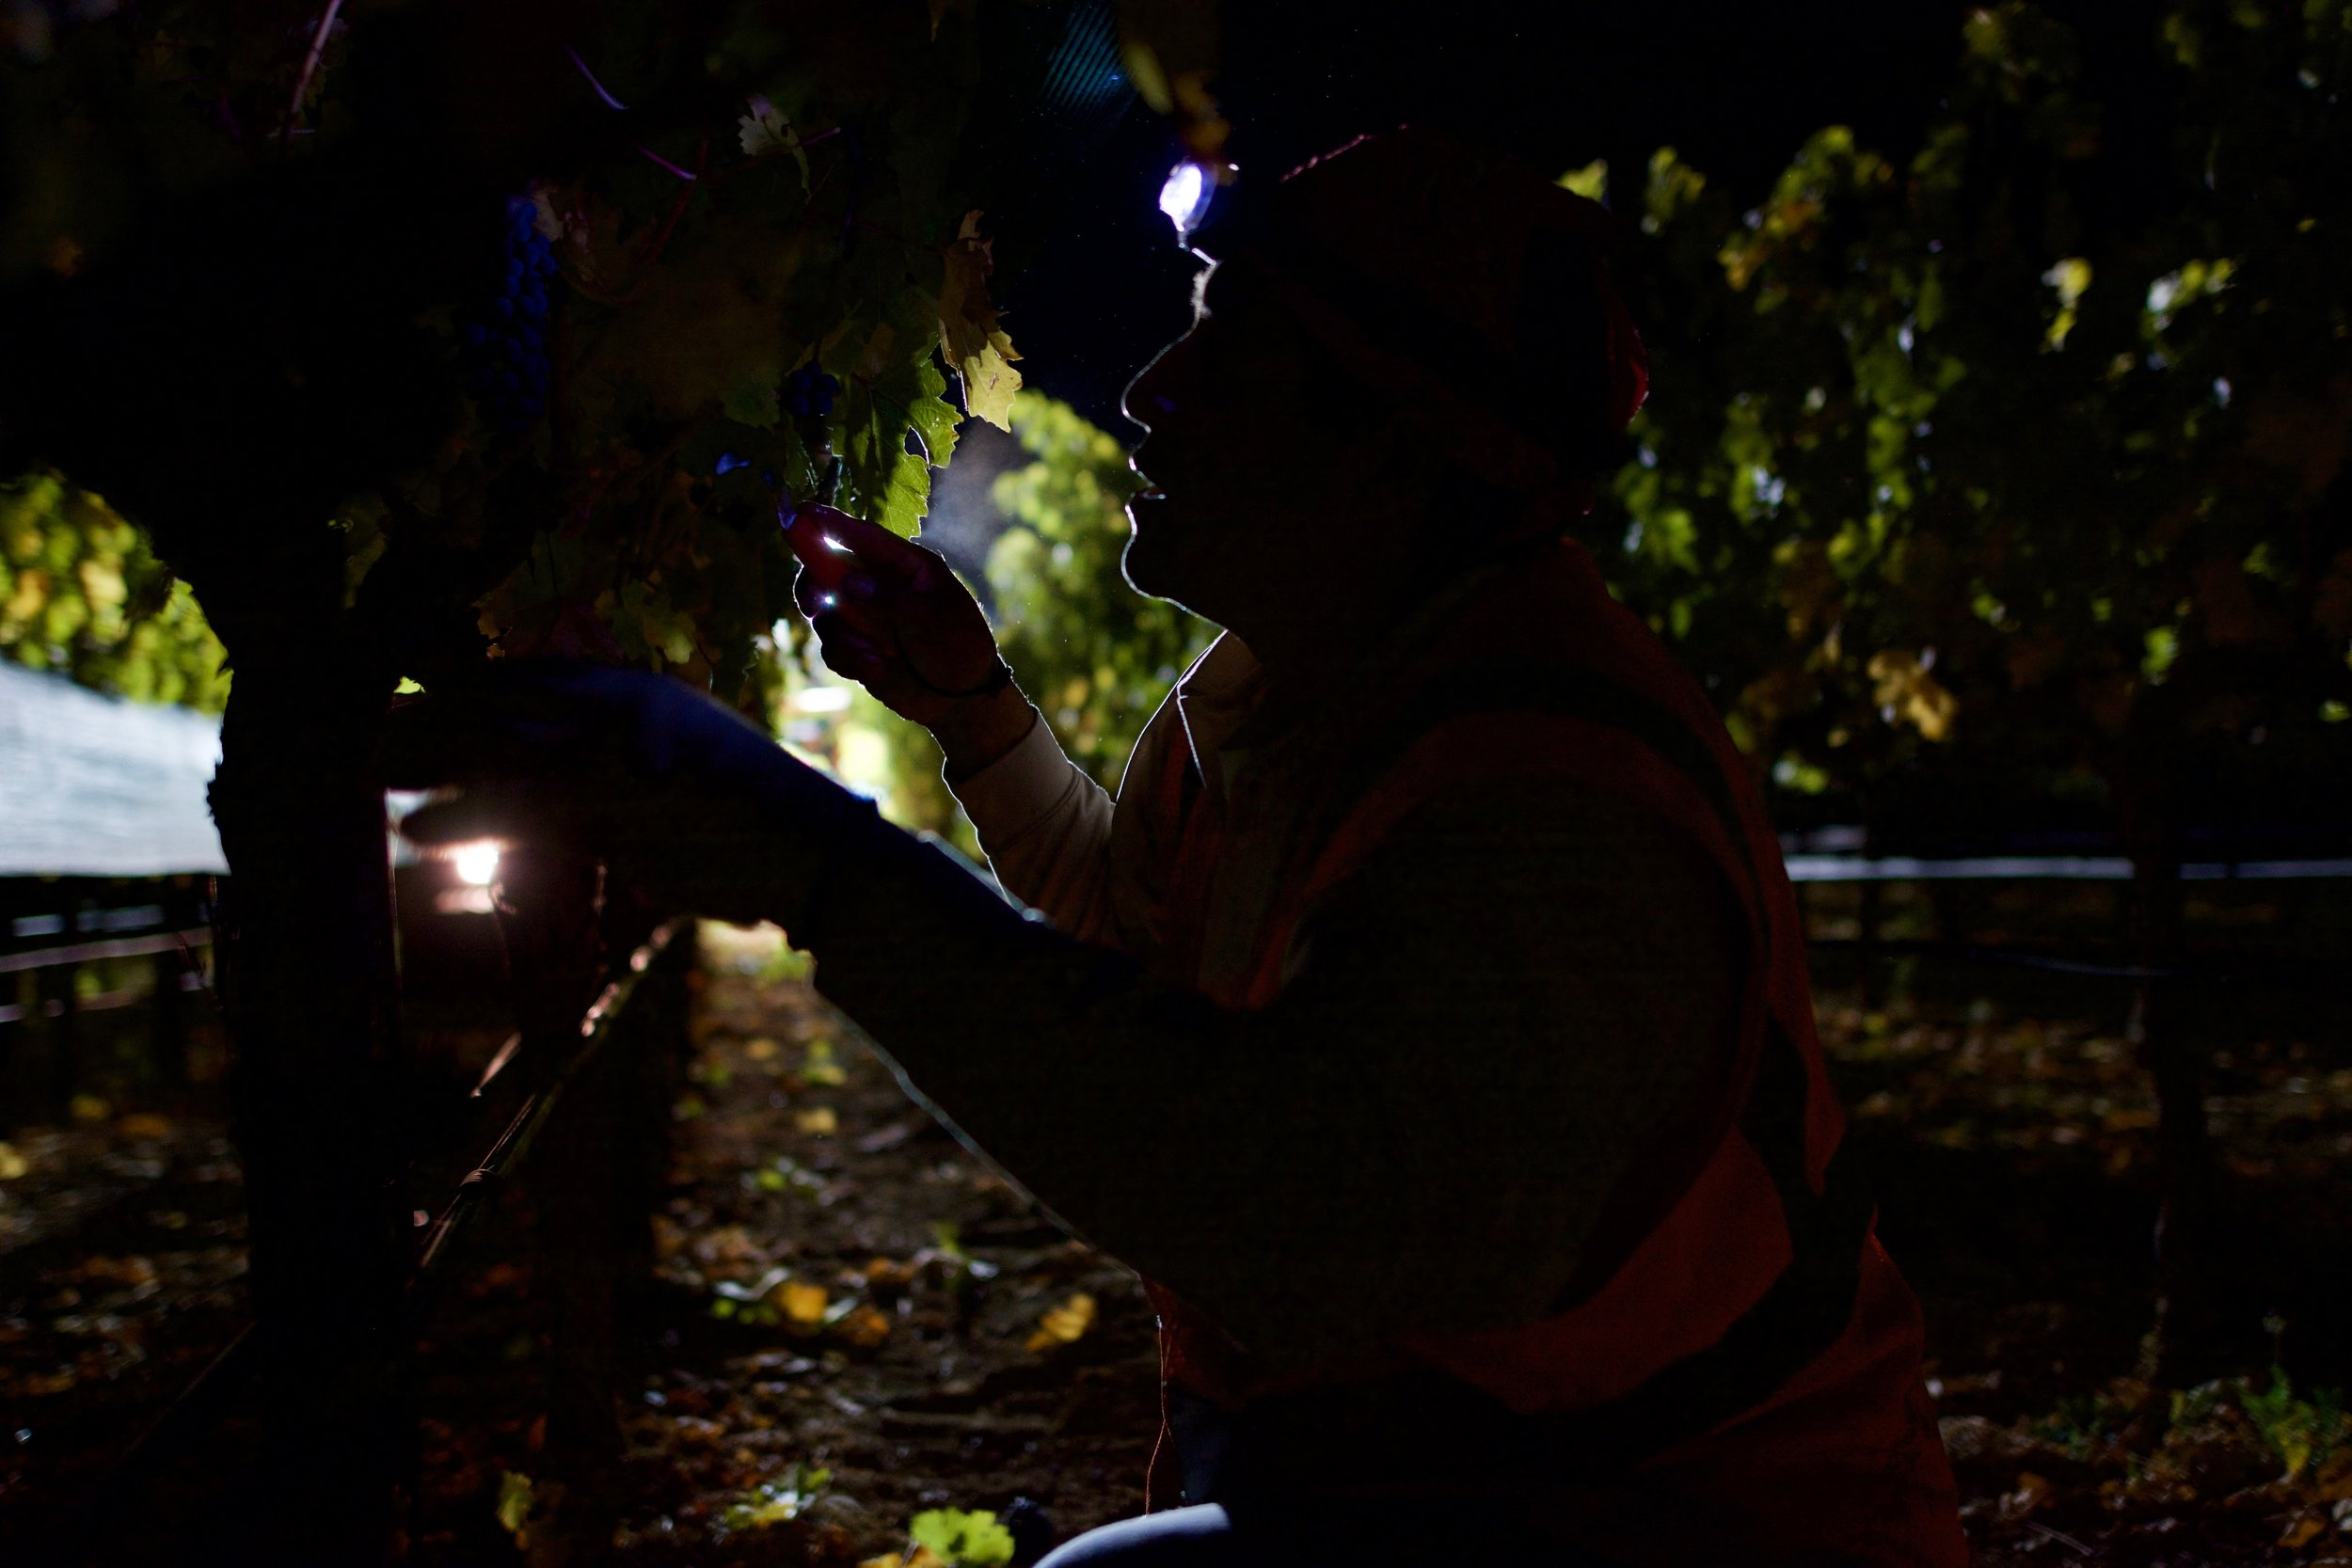 Picking fruit at night